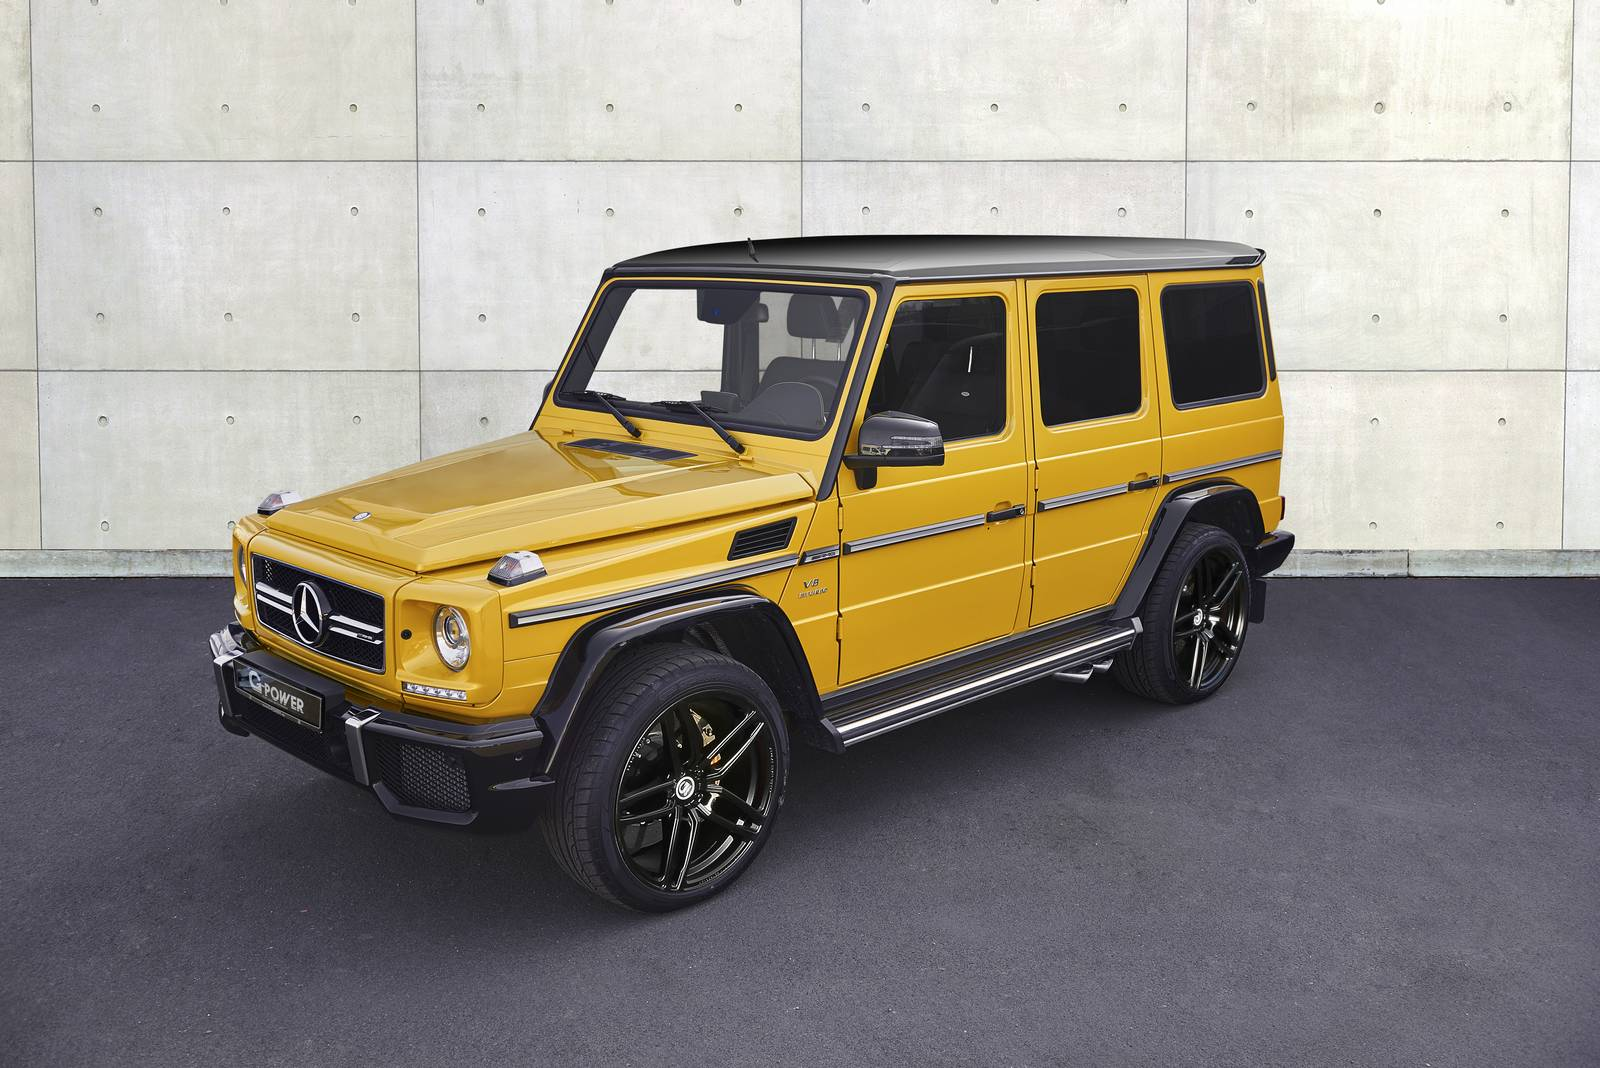 Official g power mercedes benz g63 amg with 645hp gtspirit for Mercedes benz email address